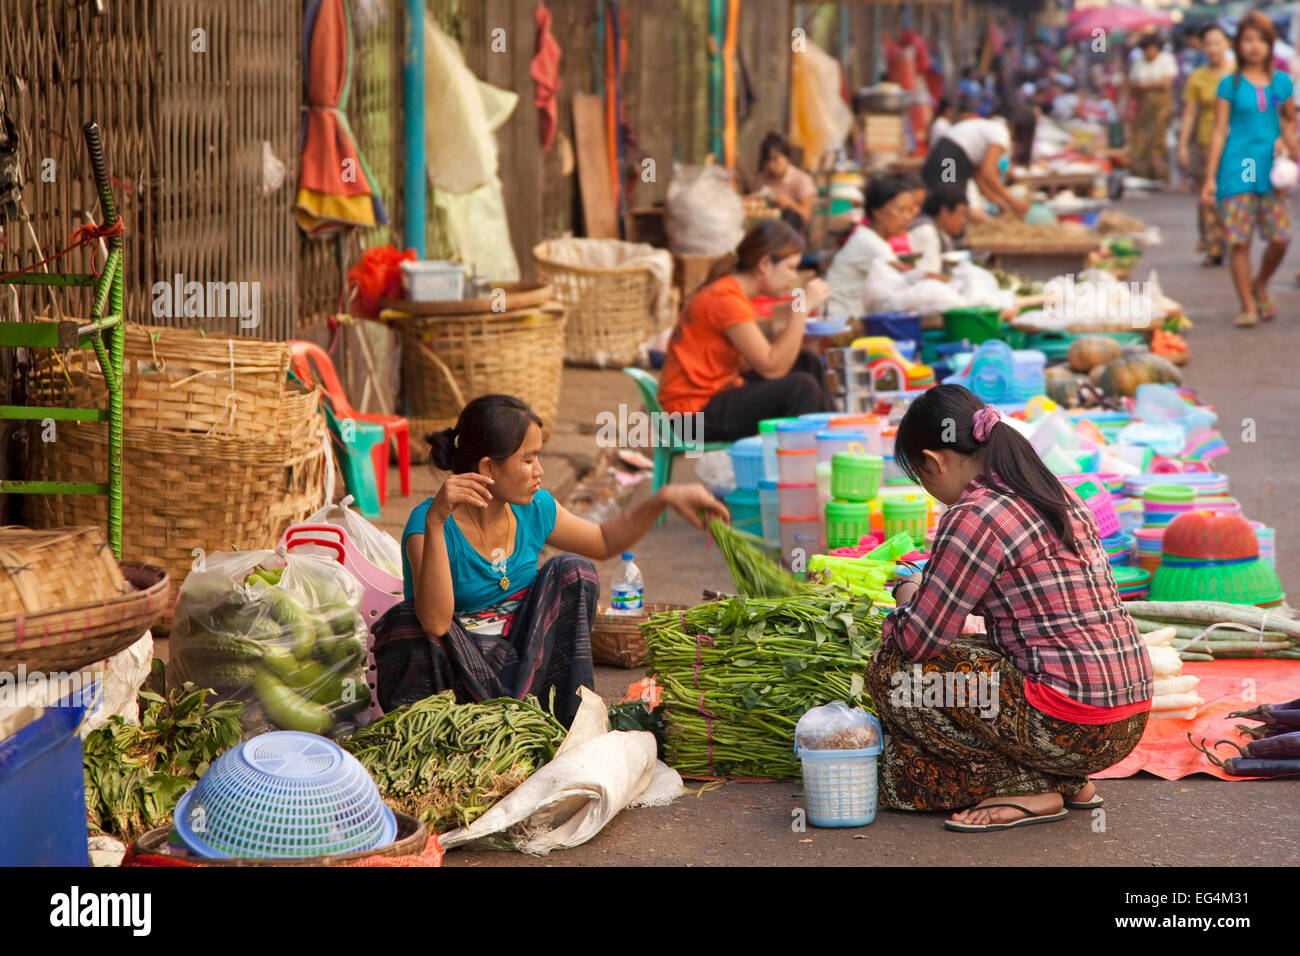 Burmese female street vendors selling food and goods on the ground at market in Yangon / Rangoon, Myanmar / Burma - Stock Image